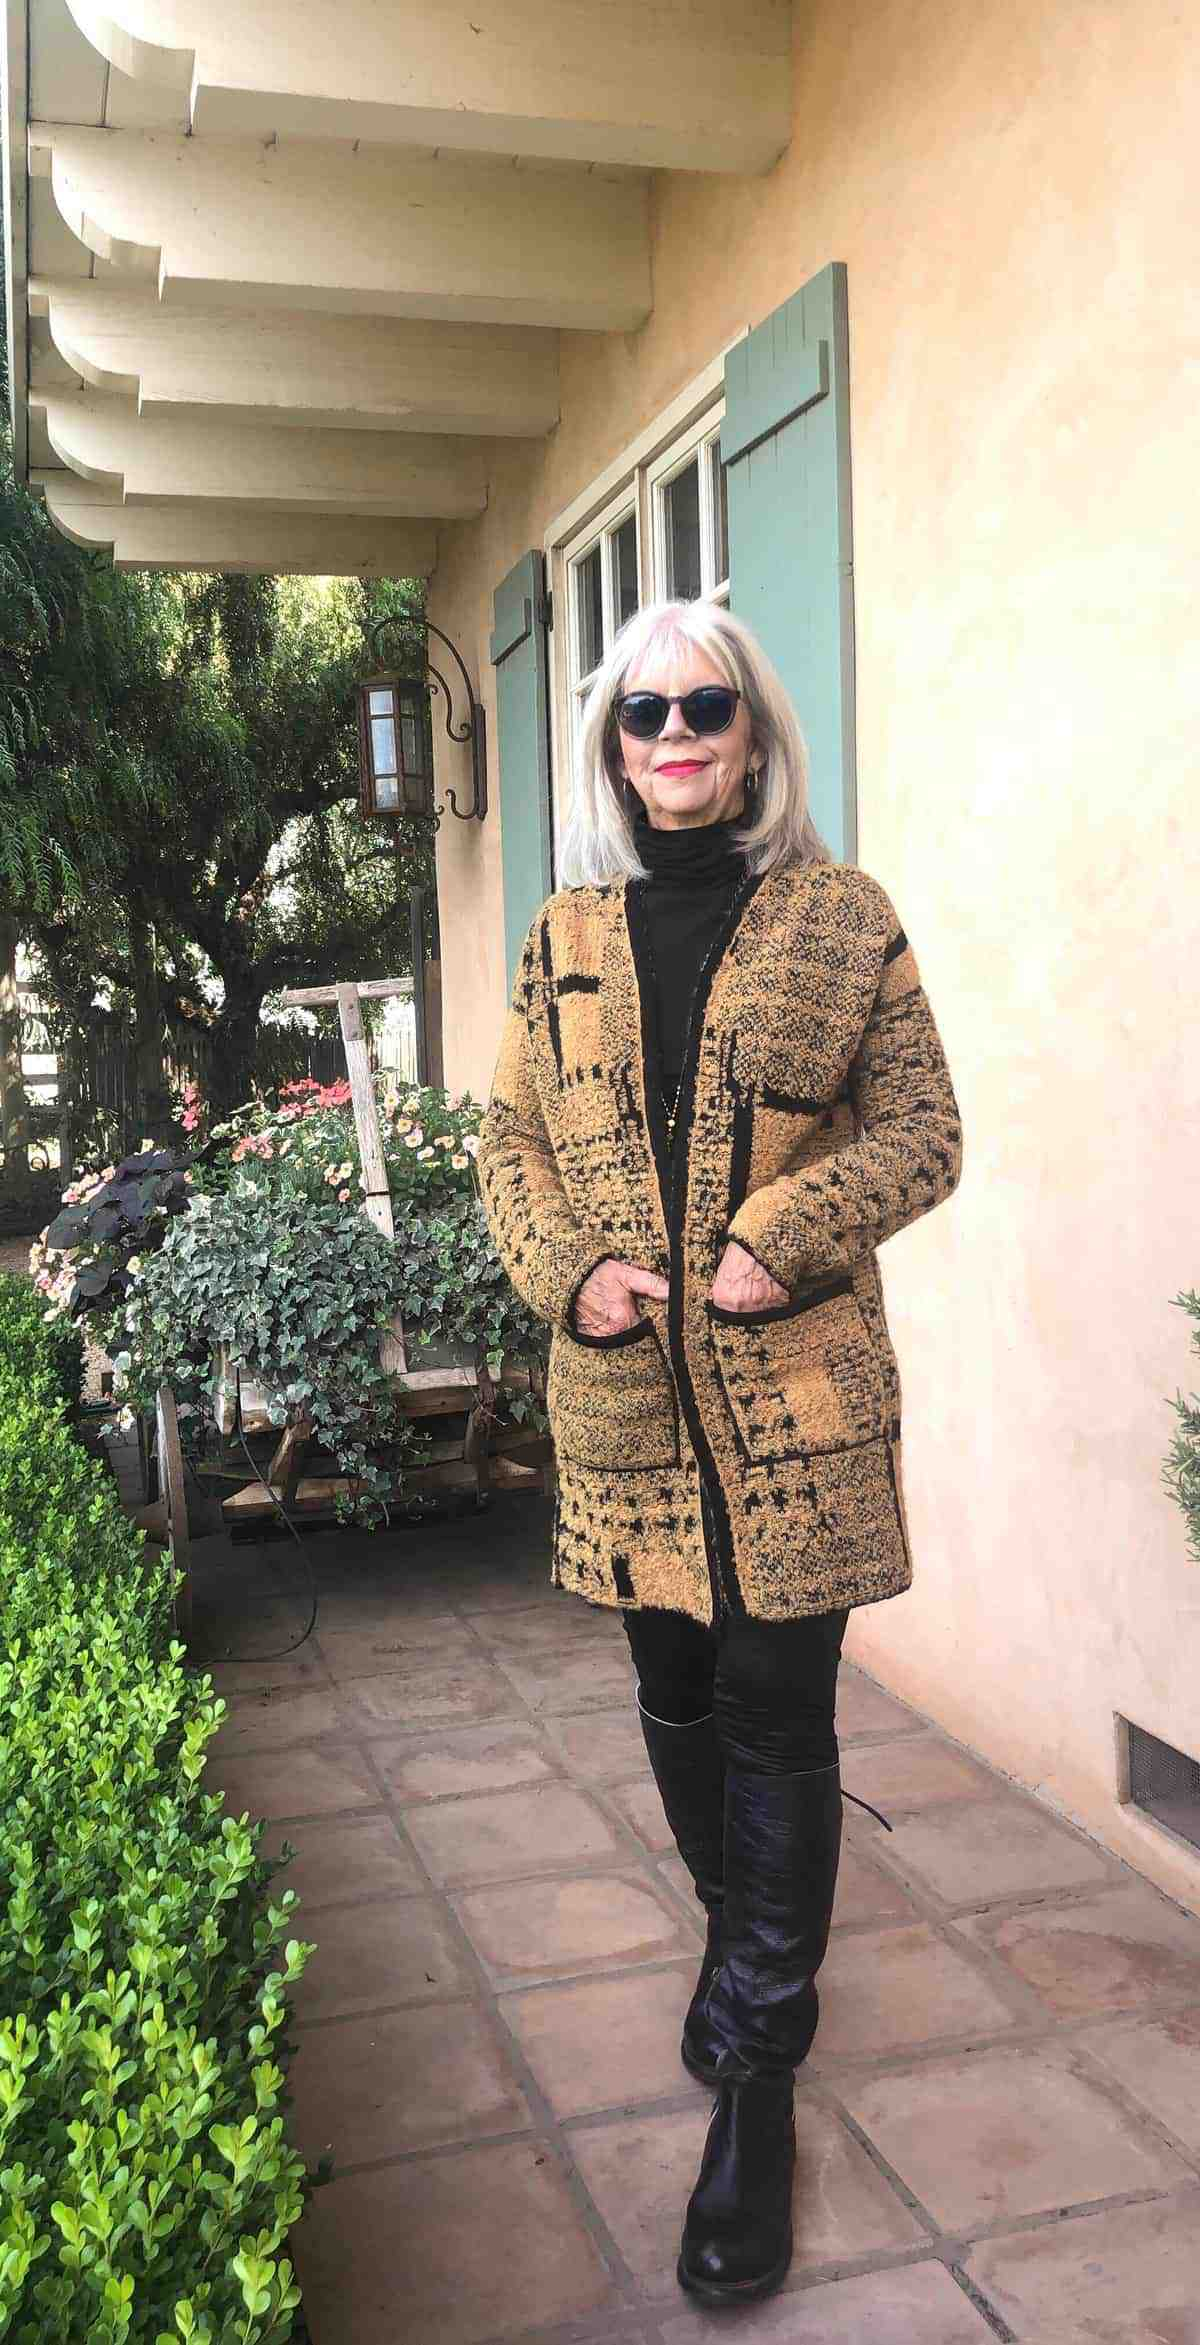 cindy hattersley wearing the peruvian connection jolie coat with black